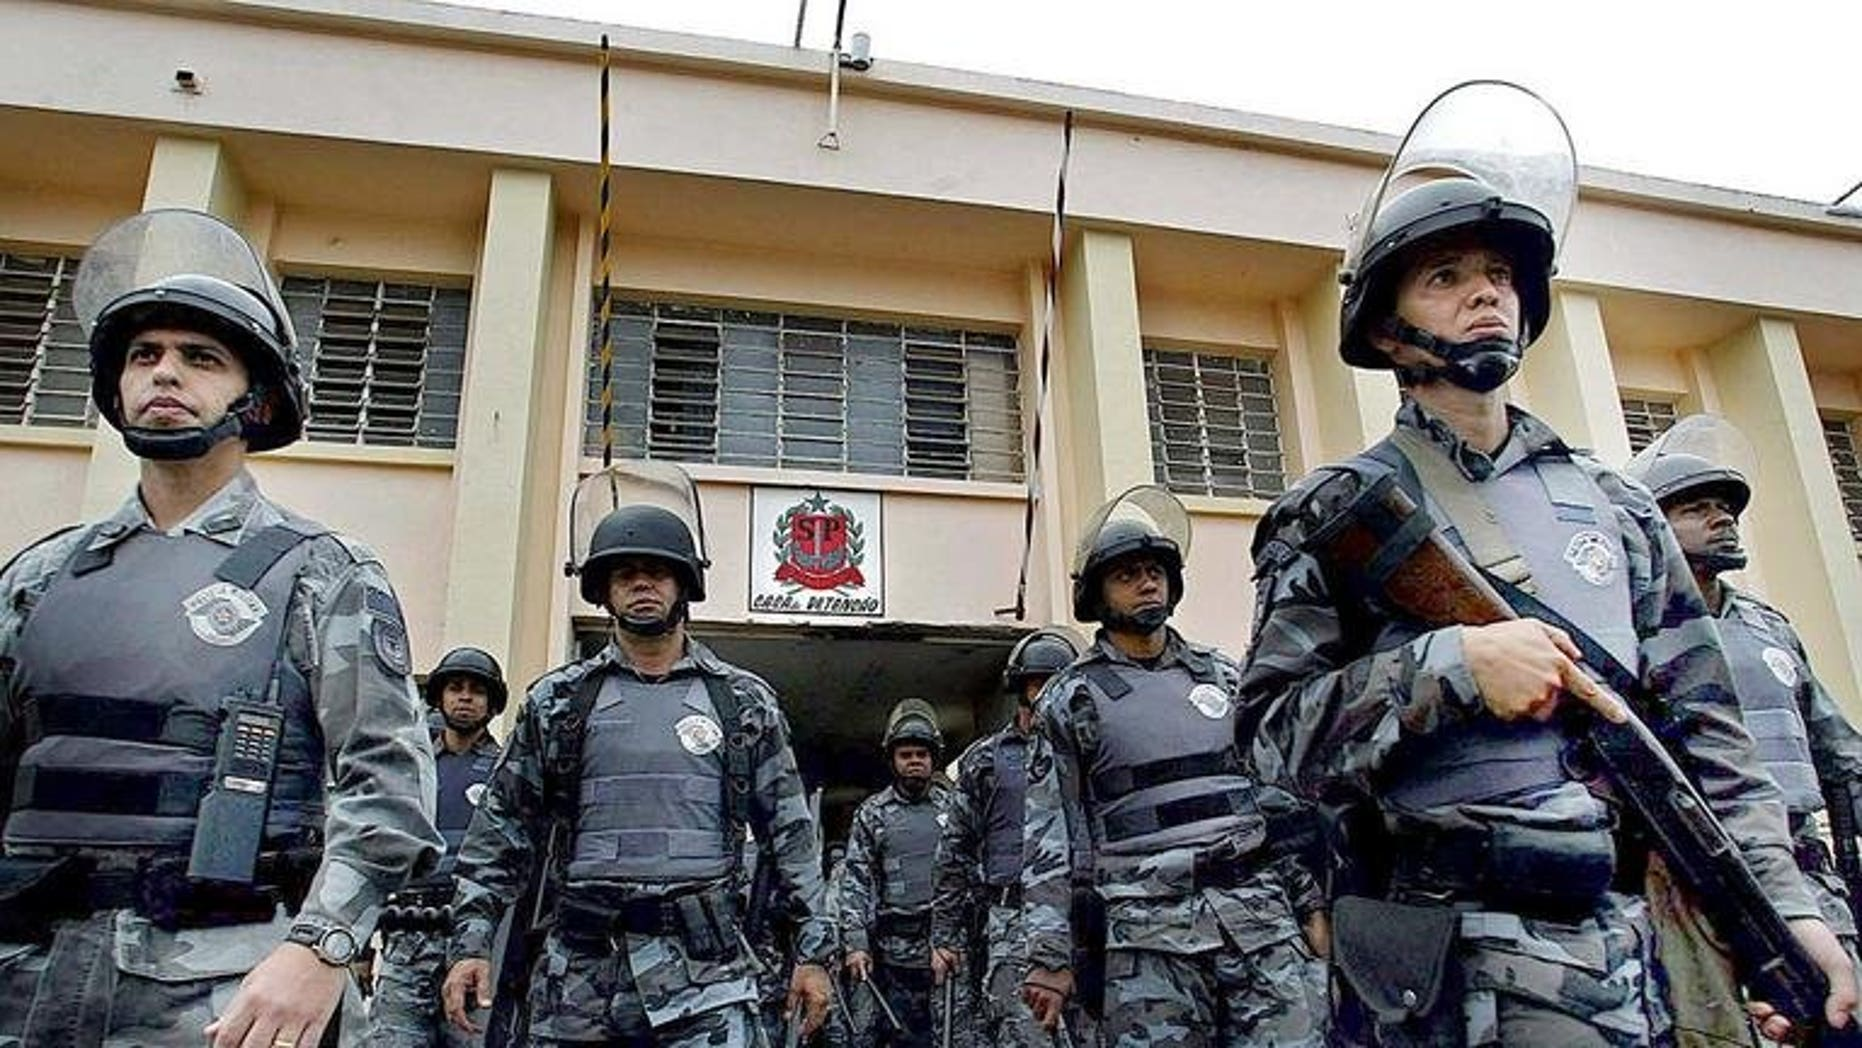 Brazilian anti-riot police provide security at the Carandiru jail 15 September 2002 in Sao Paulo, Brazil. Twenty-five police officers have been sentenced to life in prison for their role in the 1992 Carandiru prison massacre that left 111 prisoners dead.